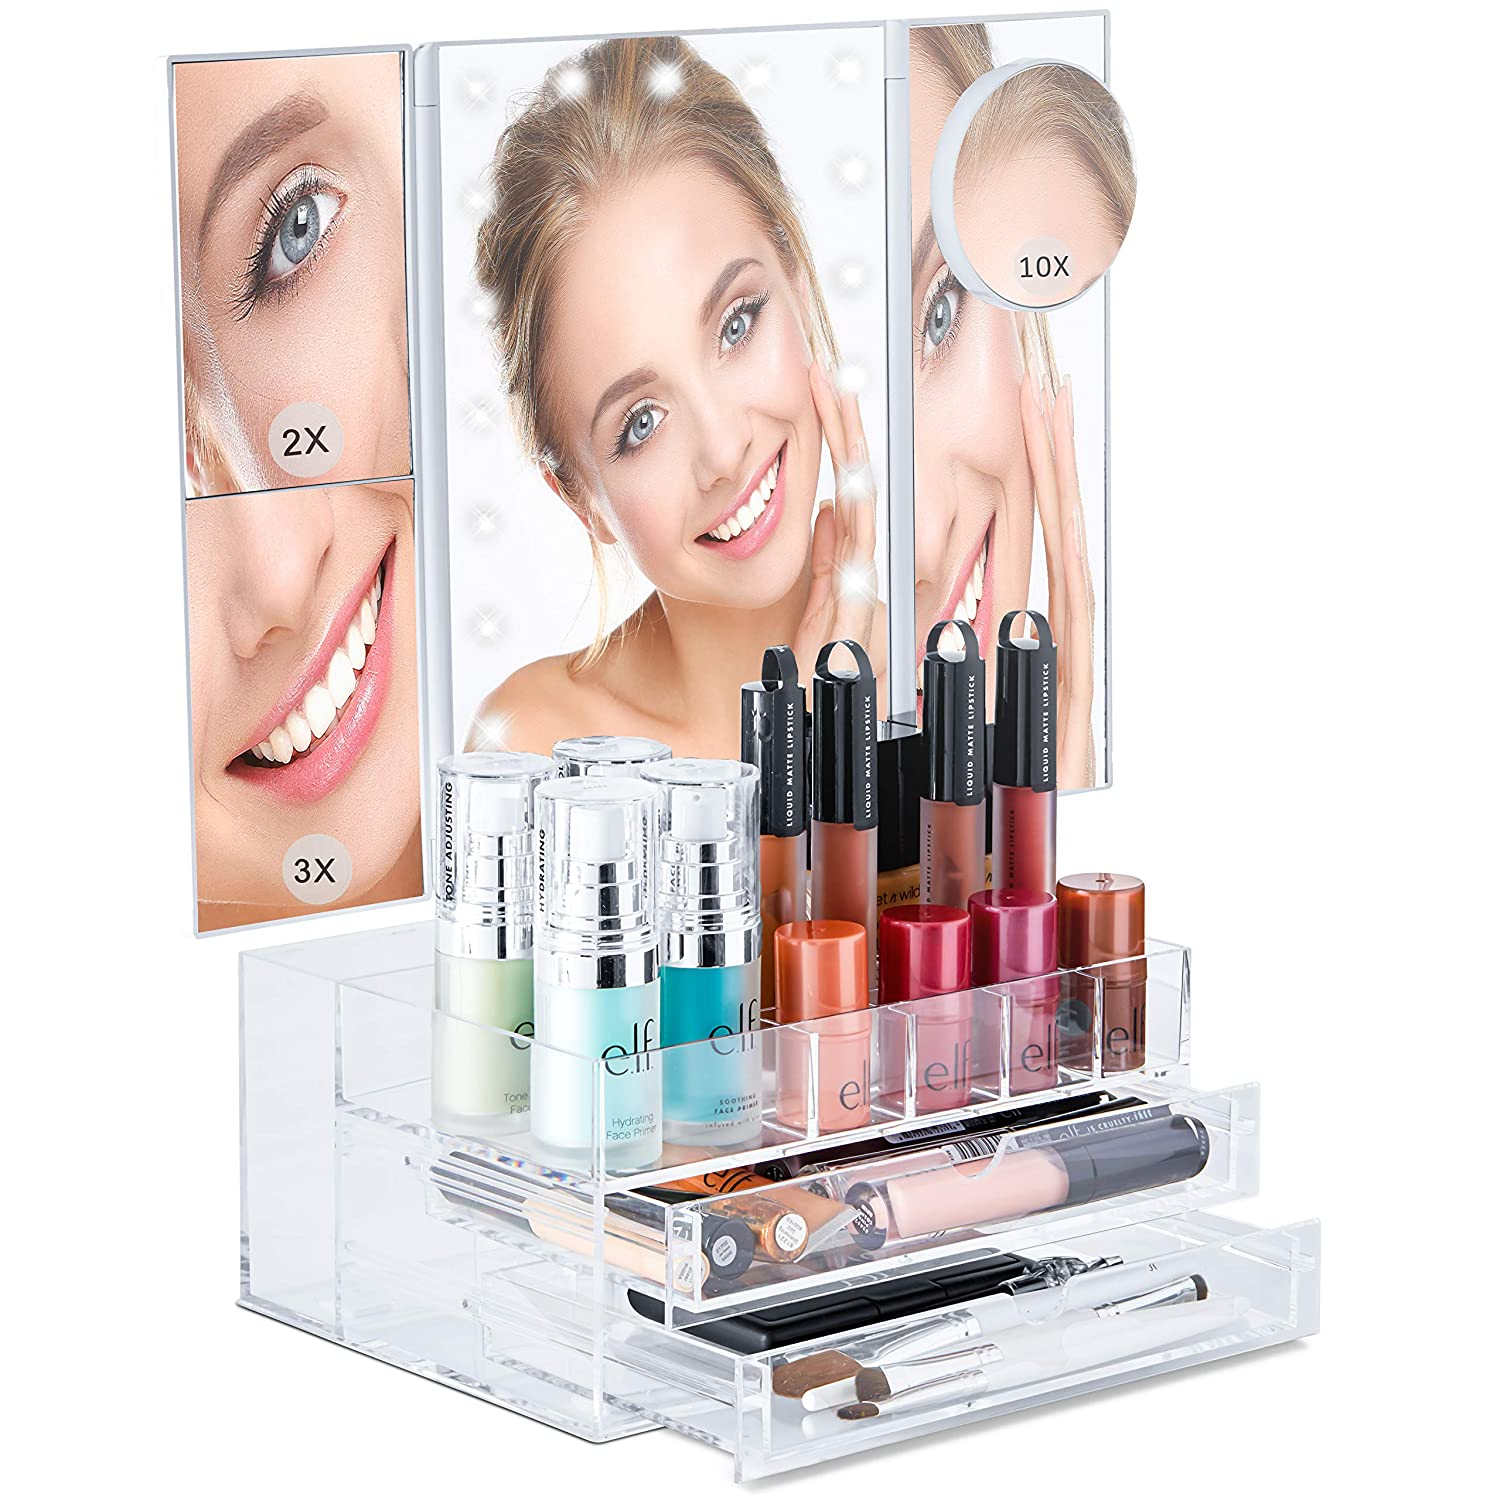 Bellapelle TriFold LED Lighted Makeup Mirror Touch Dimmable with 10x 3x 2x Magnification and Makeup Organizer for Vanity Desk or Countertop